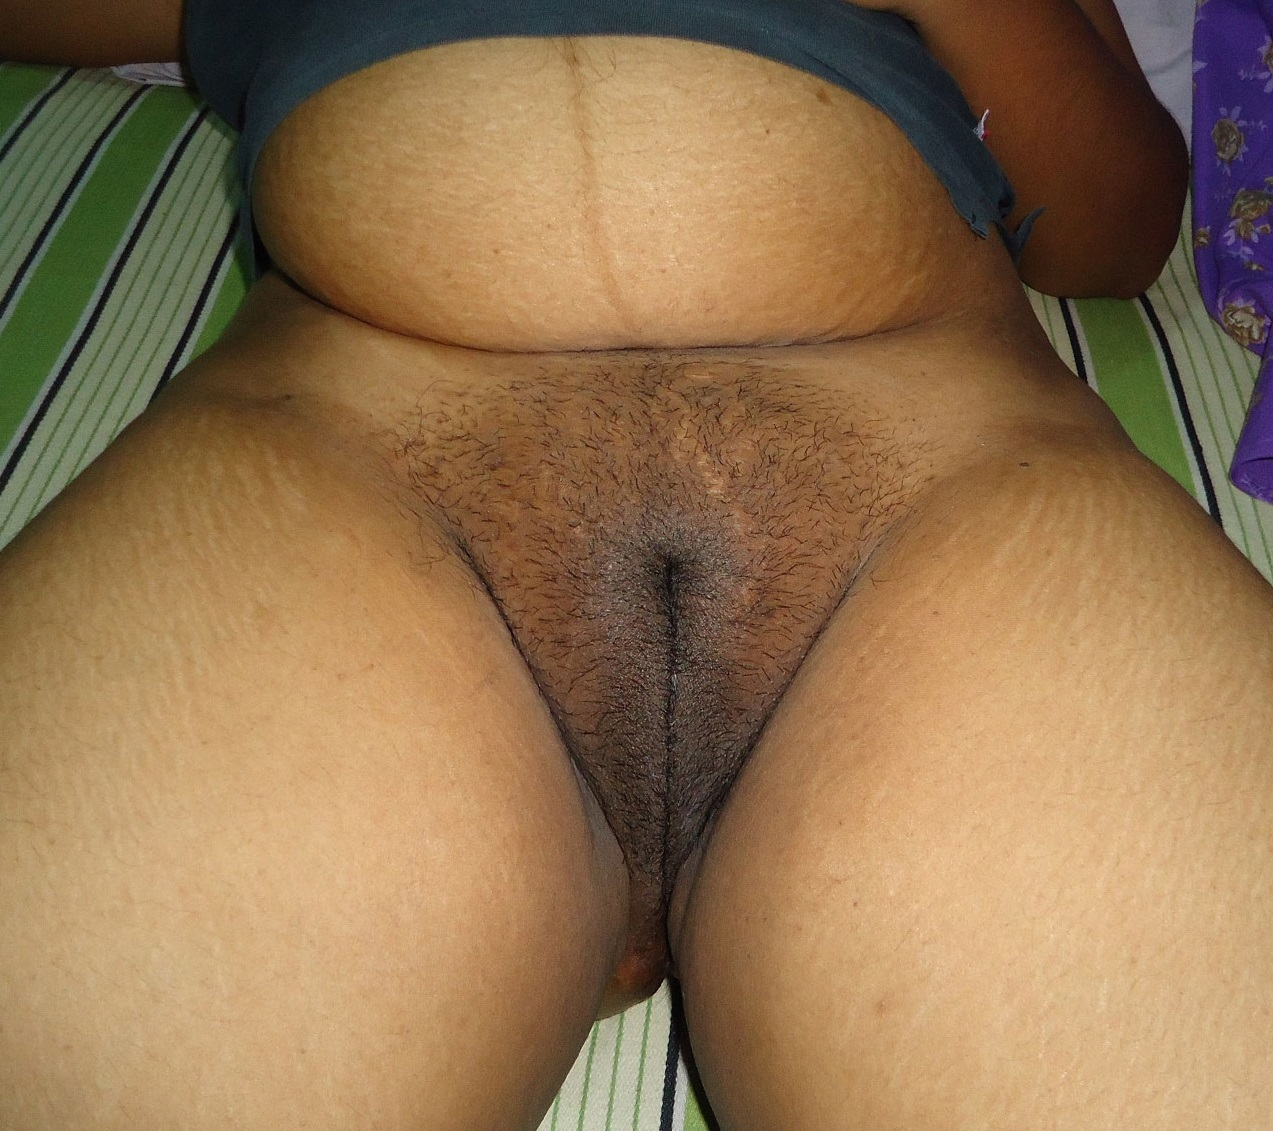 Fat desi lady pussy photo